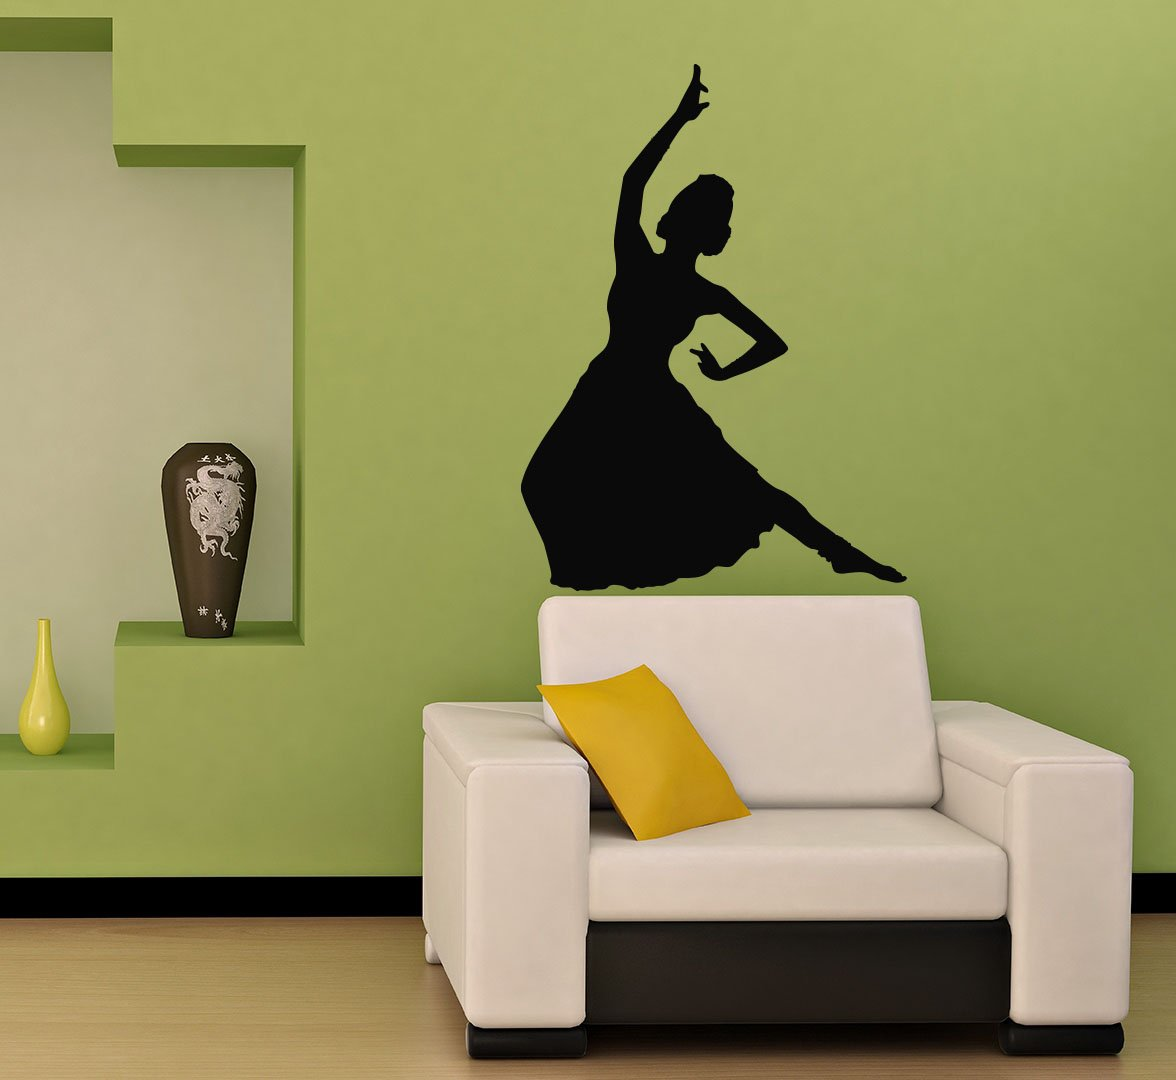 Hindu Indian Girl Dancing Woman Silhouette Wall Vinyl Decal Art Sticker Home Modern Stylish Design Interior Decor for Any Room Smooth and Flat Surfaces Housewares Murals Window Graphic Dance Studio Living Room Bedroom (3911)